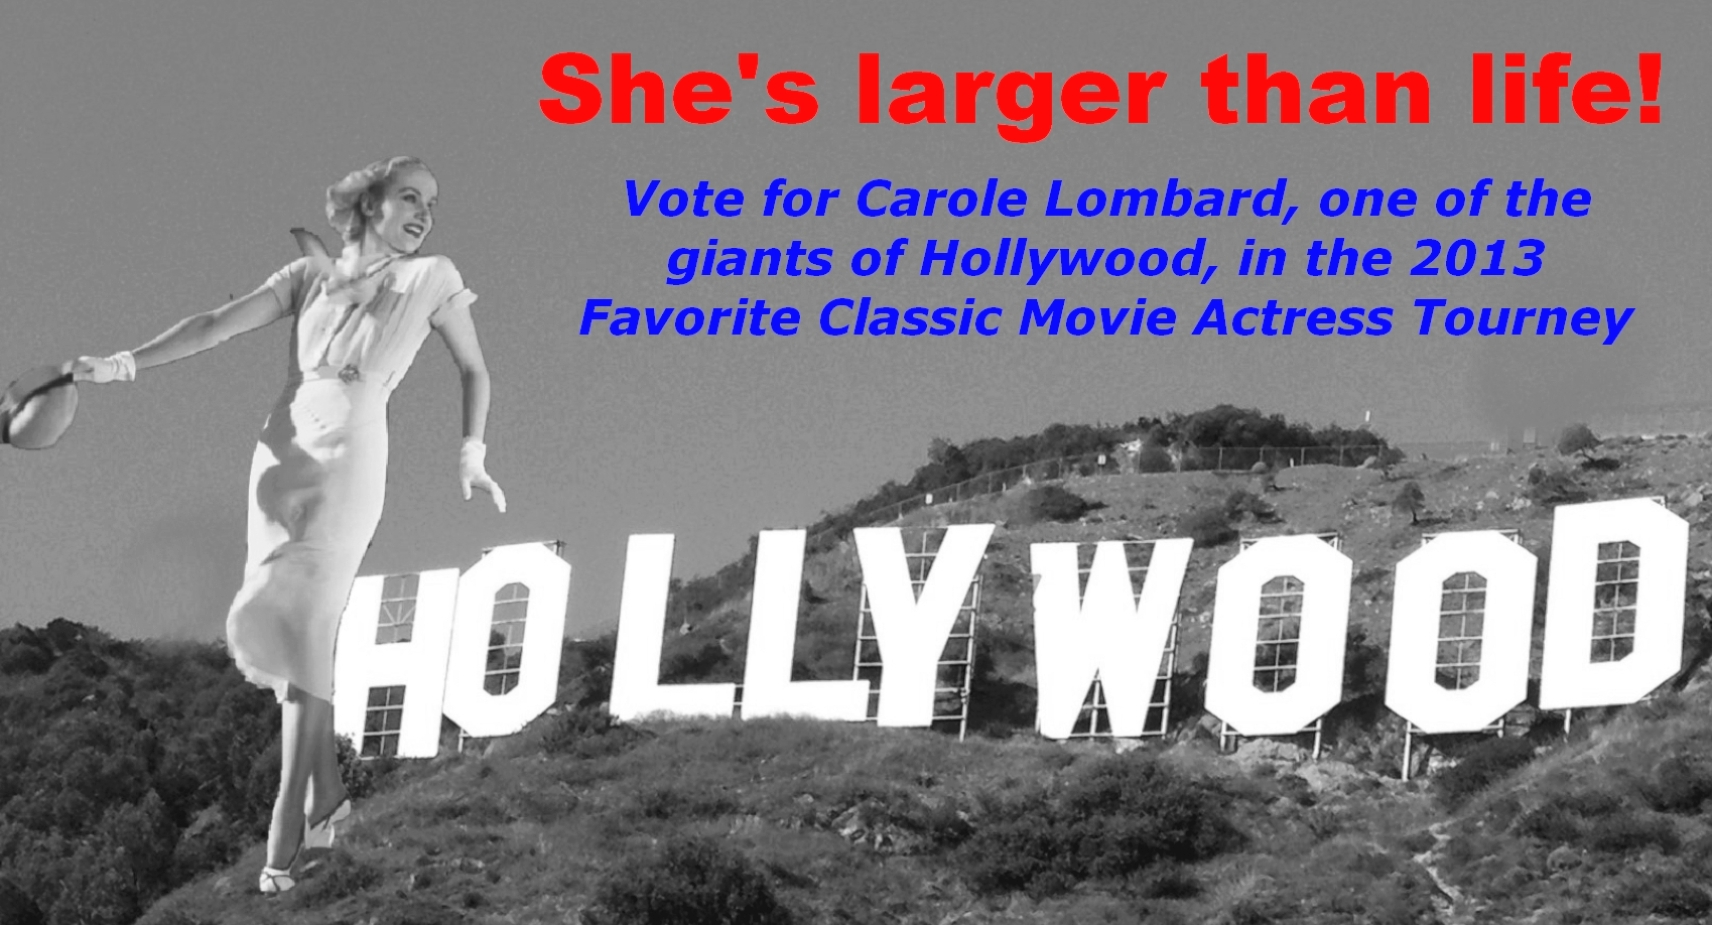 carole lombard 2013 favorite classic movie actress tourney banner 02a